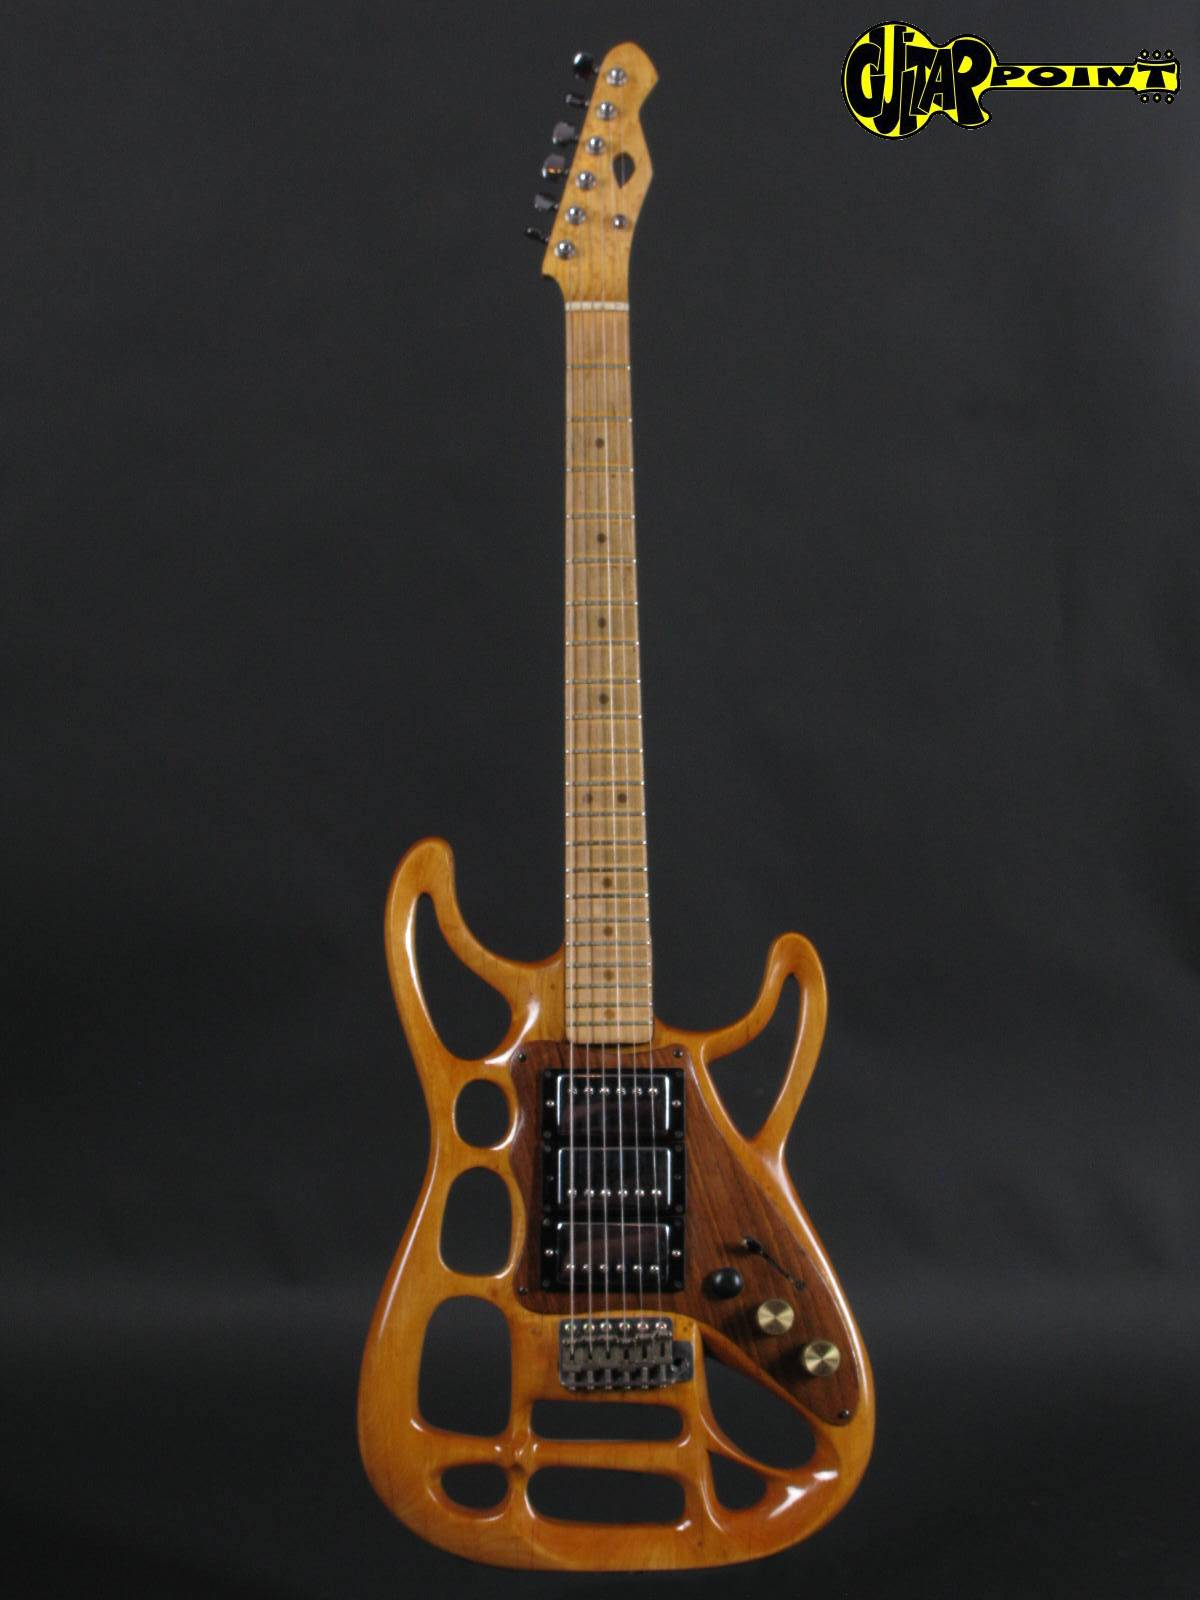 https://guitarpoint.de/app/uploads/products/1965-fender-stratocaster-modified/Fender65Strat_Hollow_1.jpg